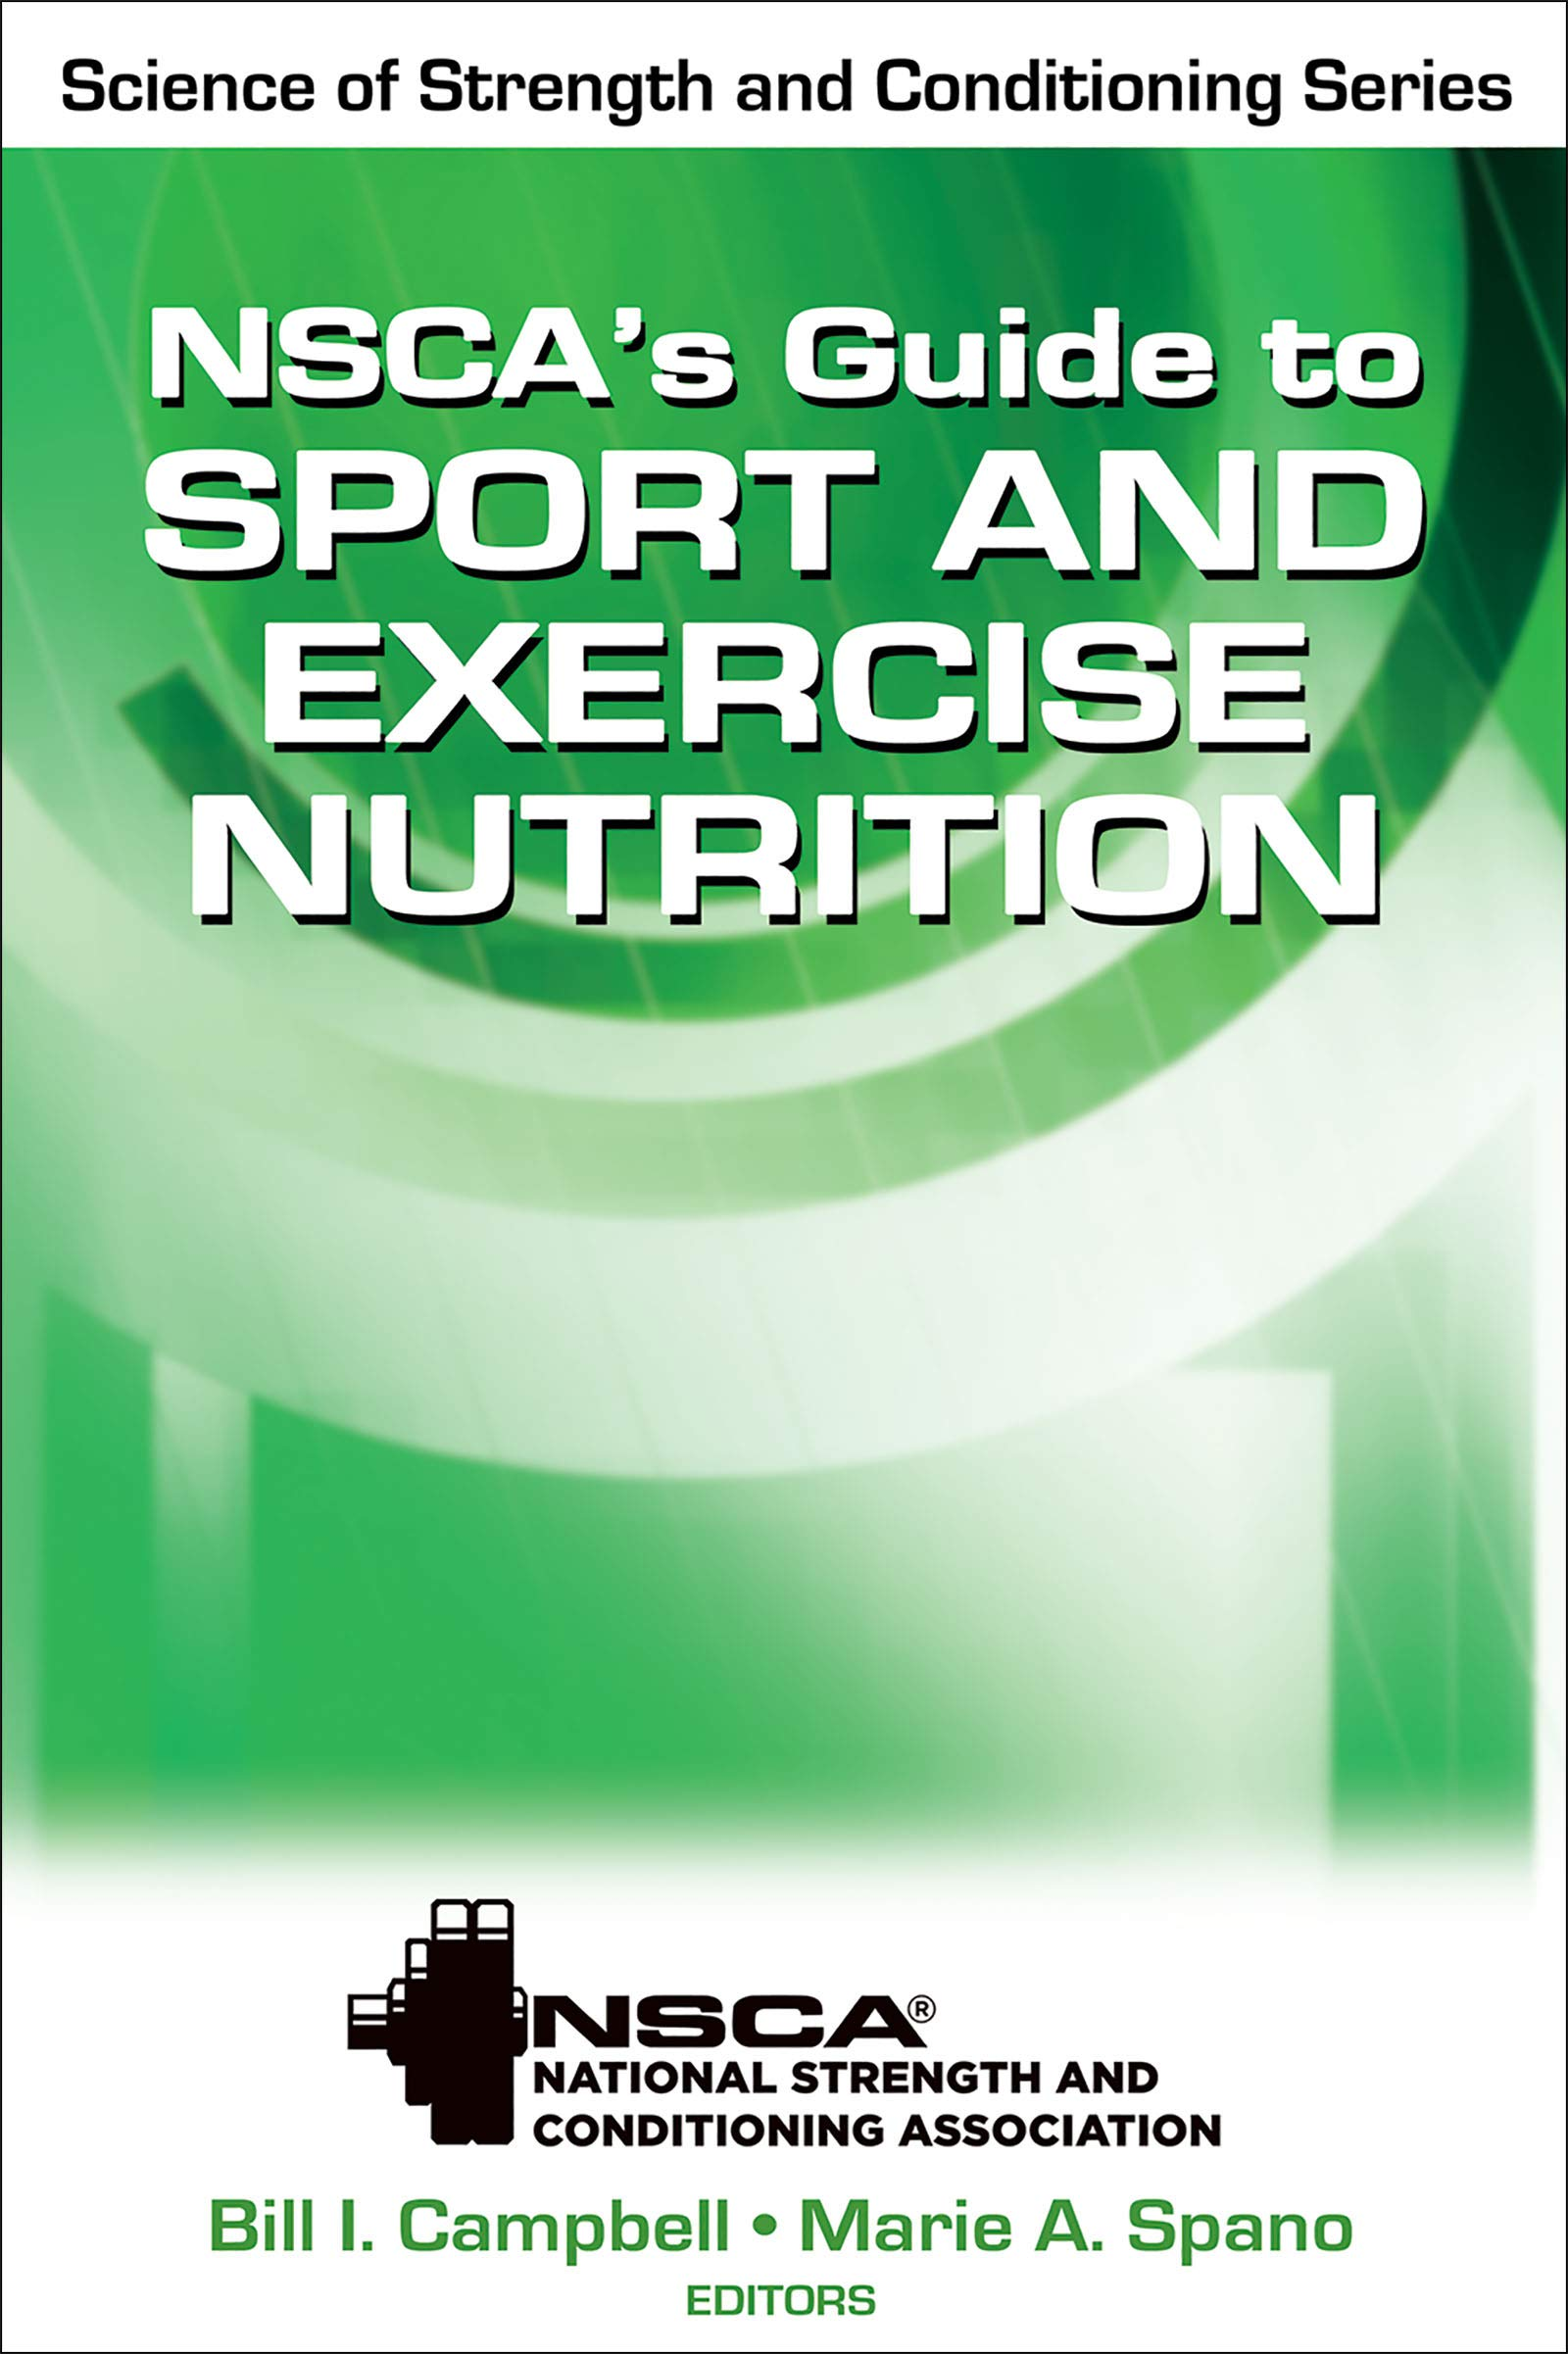 Buy Nscas Guide To Sport And Exercise Nutrition Science Of